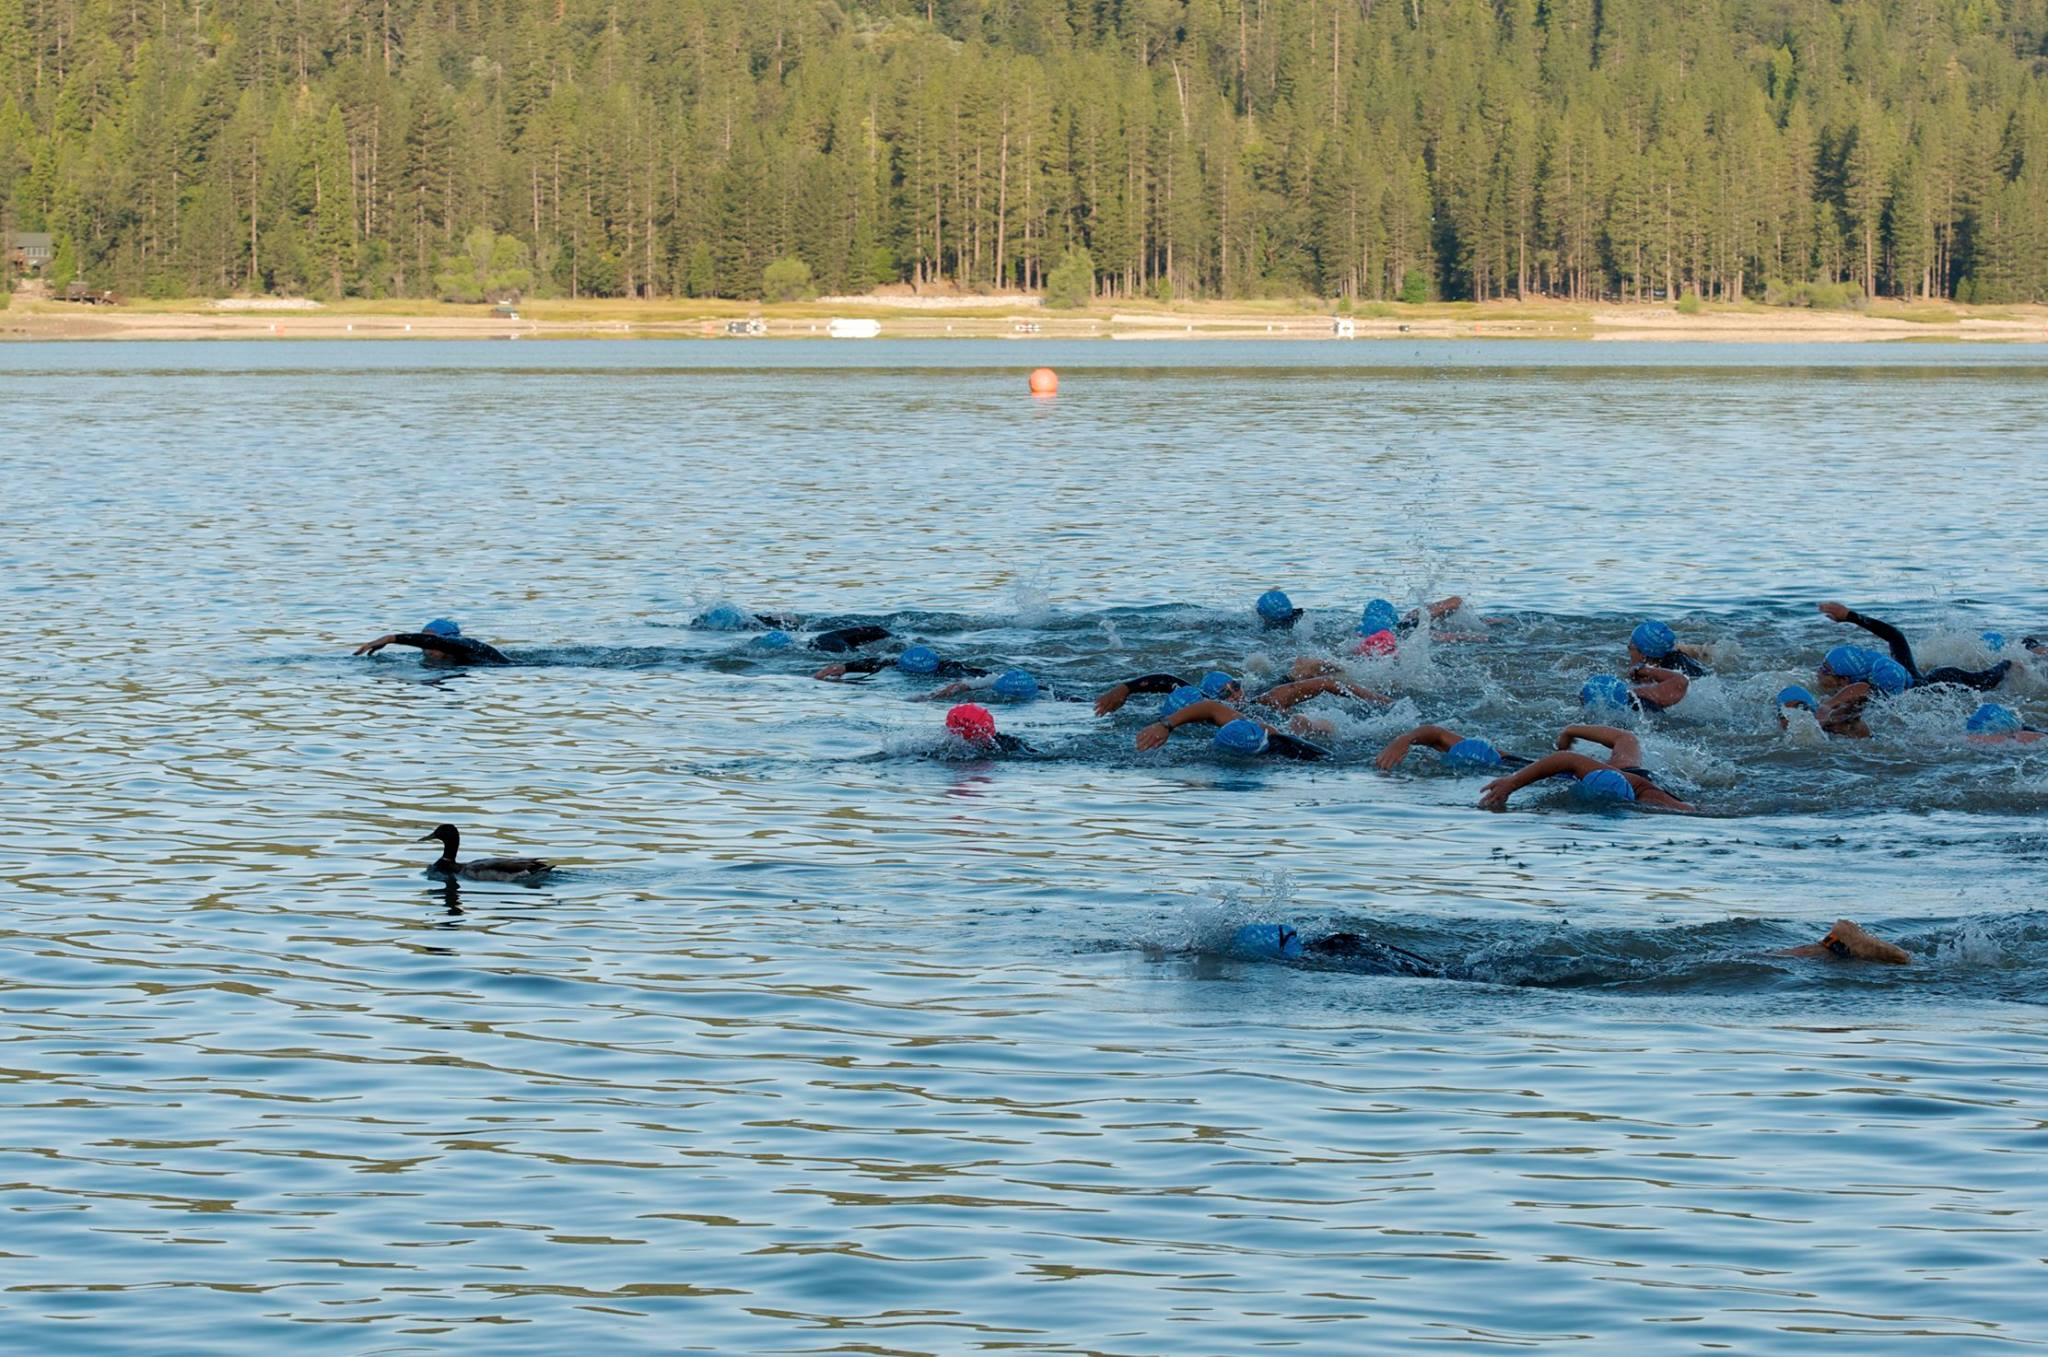 Racers take off into the water at Bass Lake Classic Tri - Photo by Monique Wales